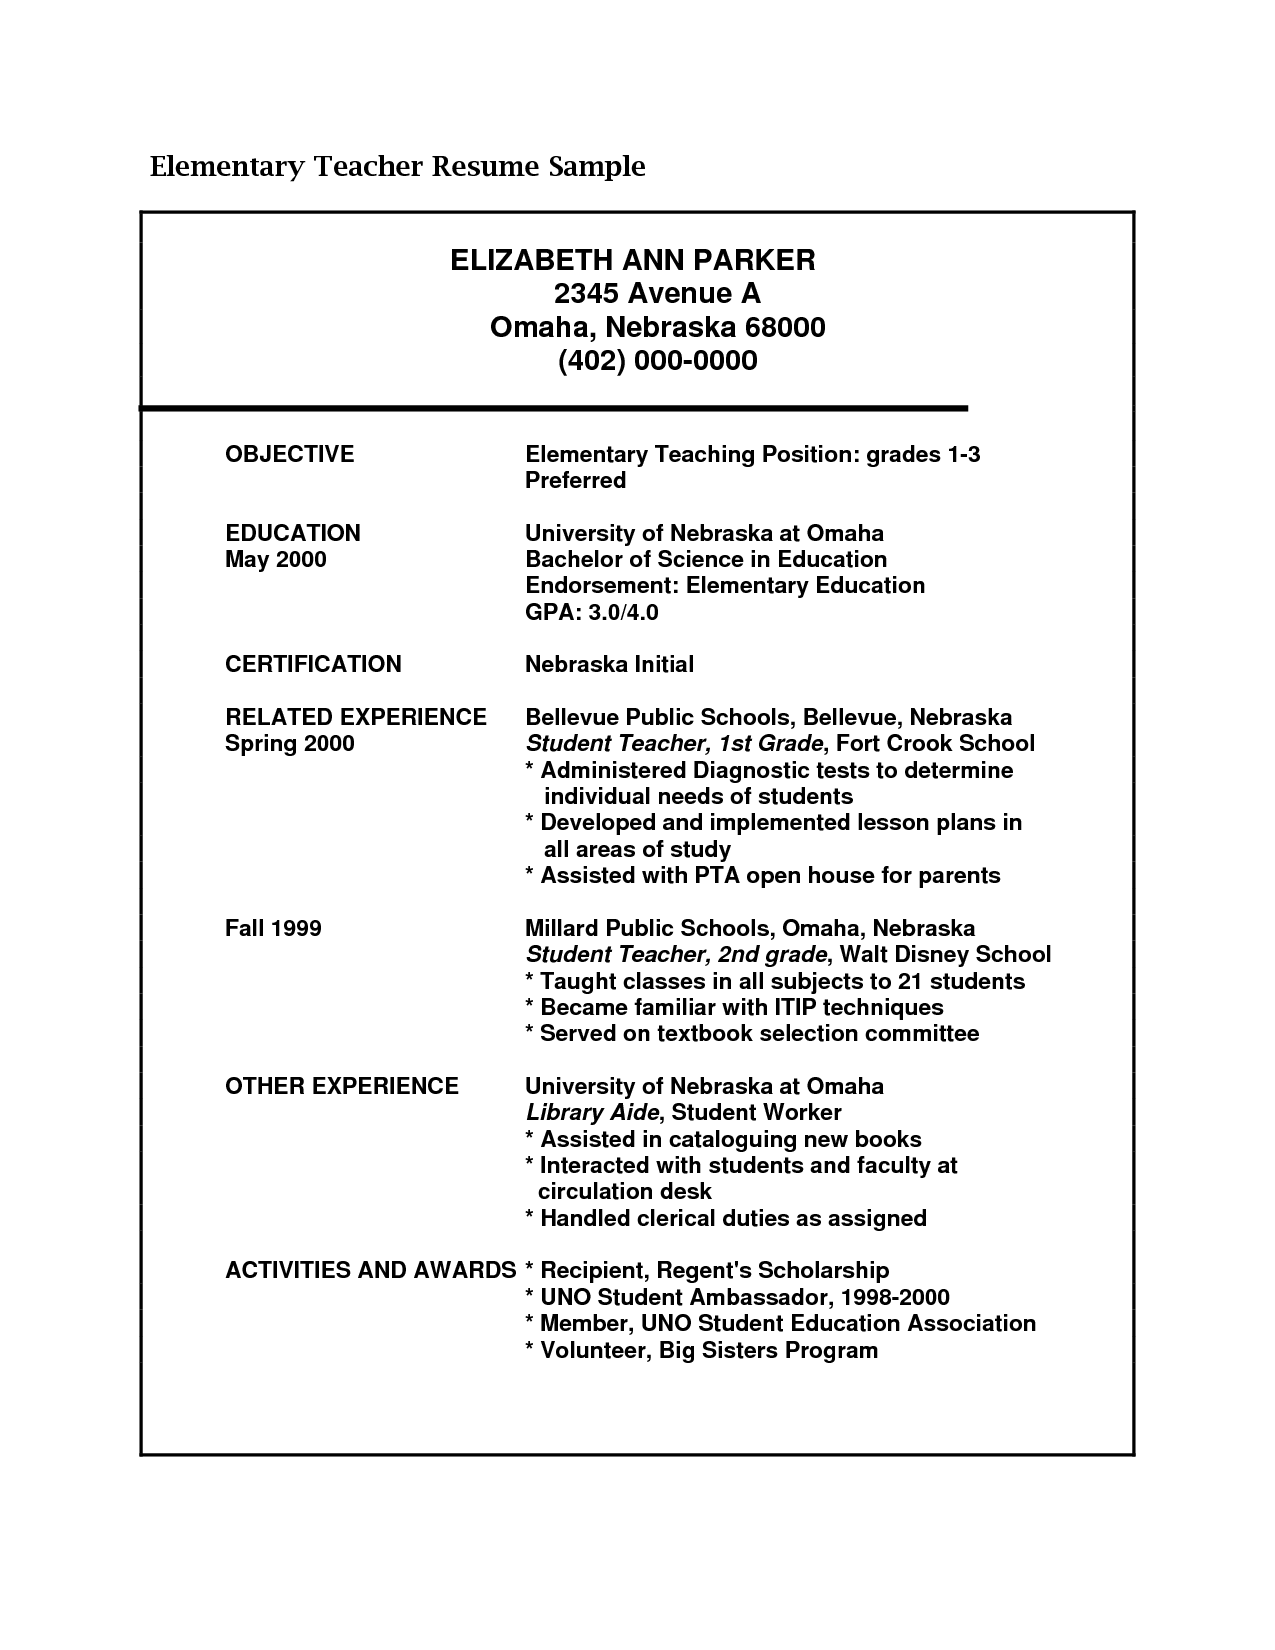 admin teacher resume examples elementary teacher resume examples